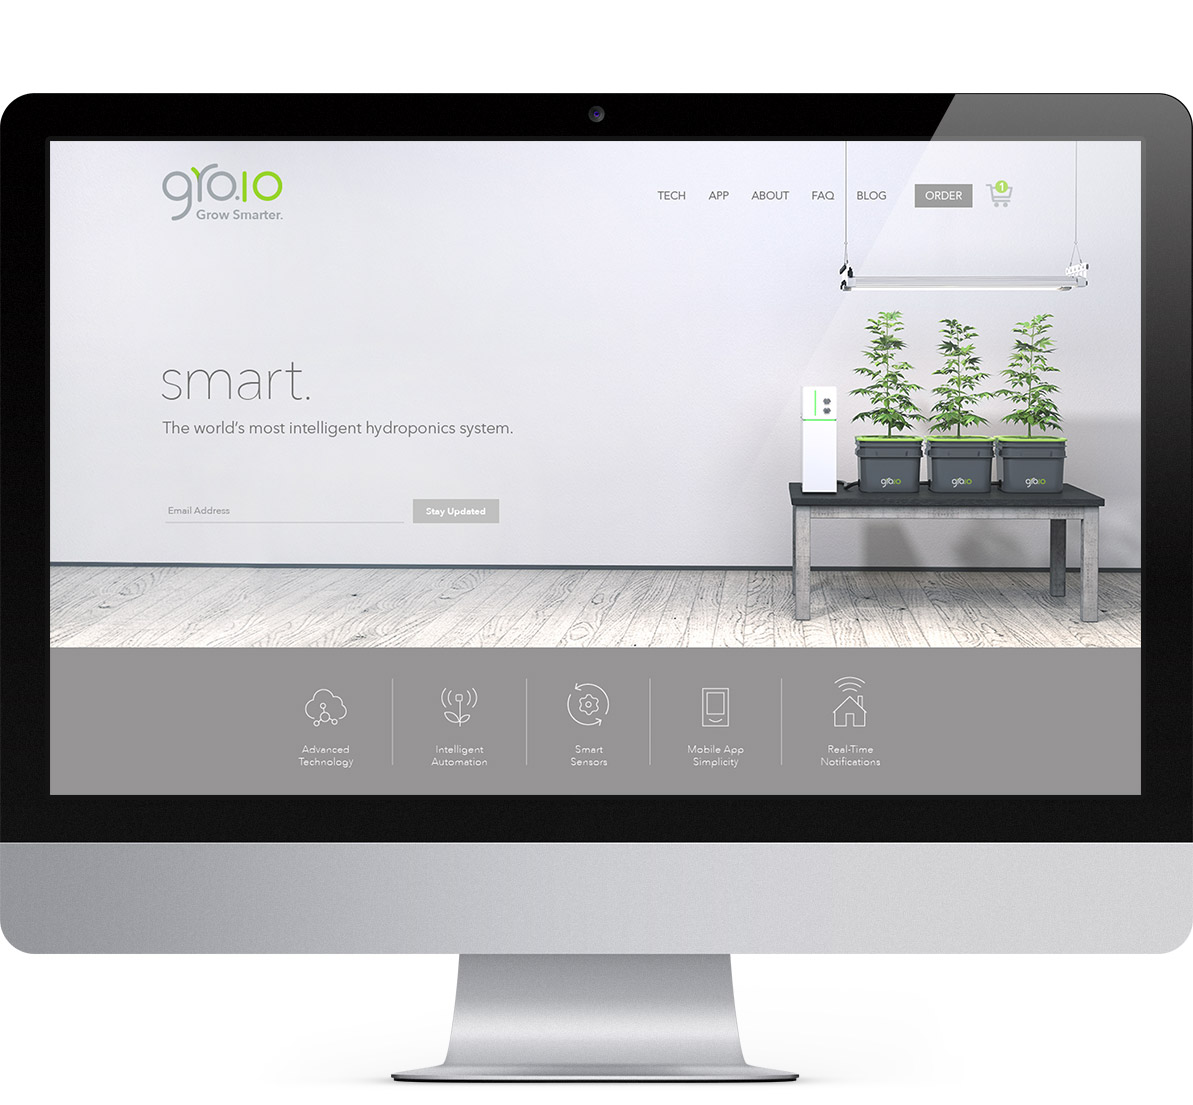 groio website and branding project